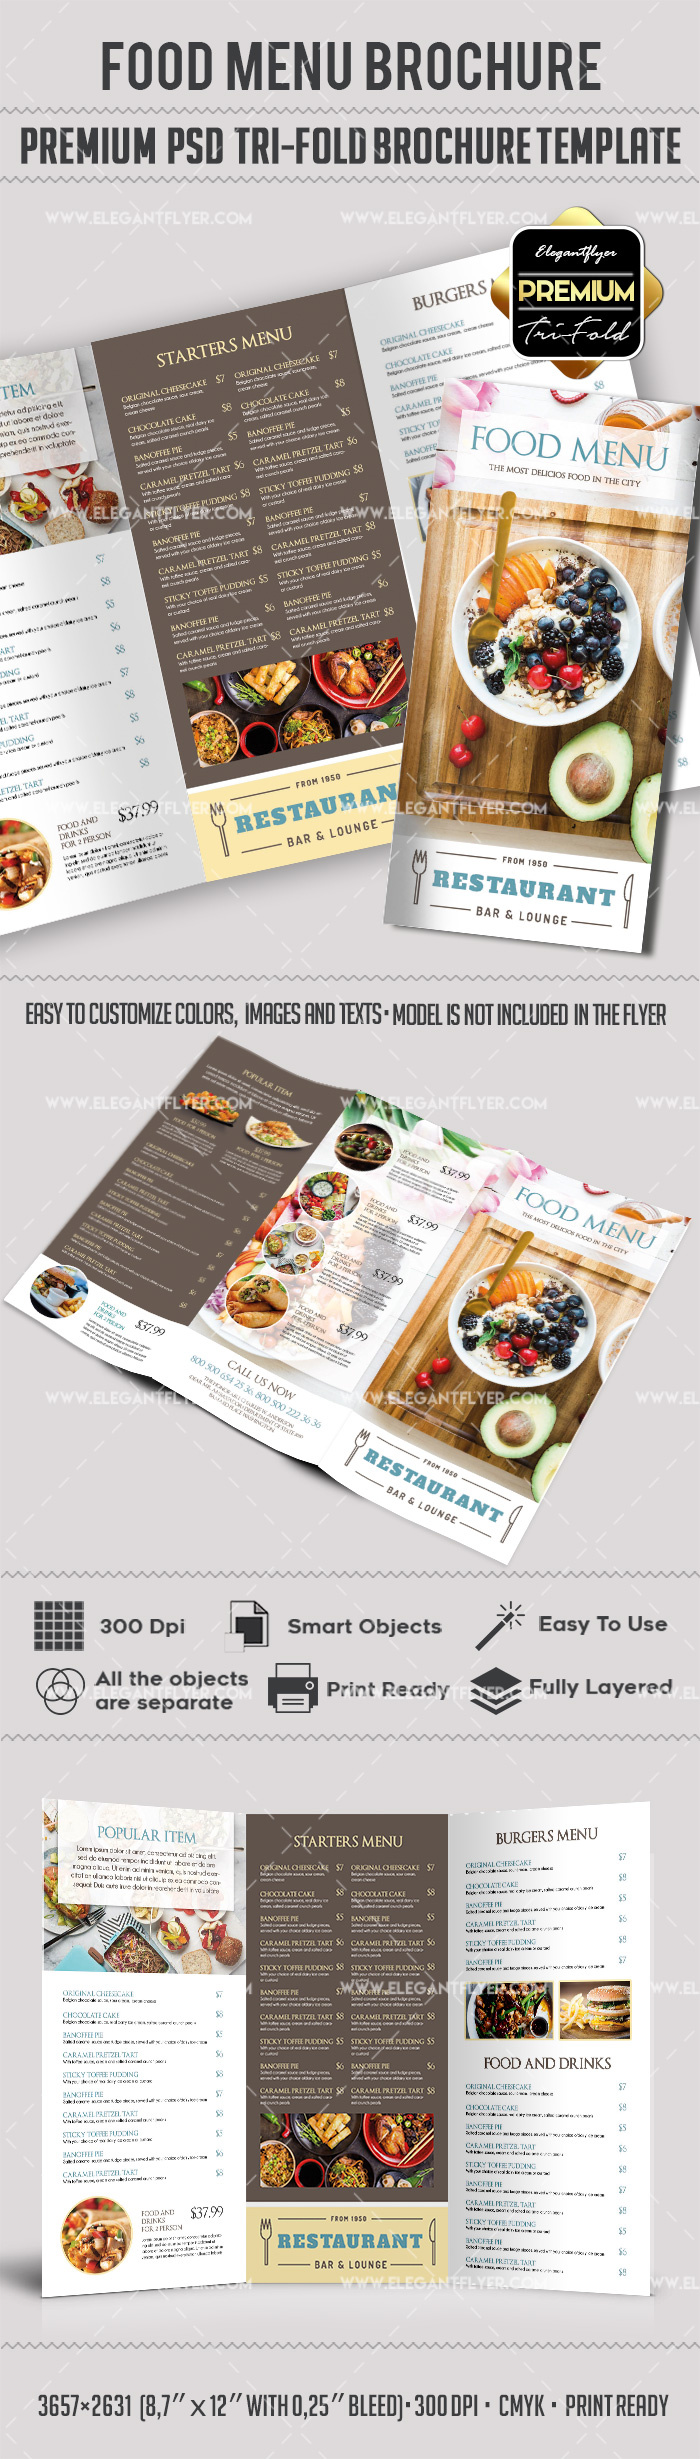 menu brochure template - food menu premium tri fold psd brochure template by